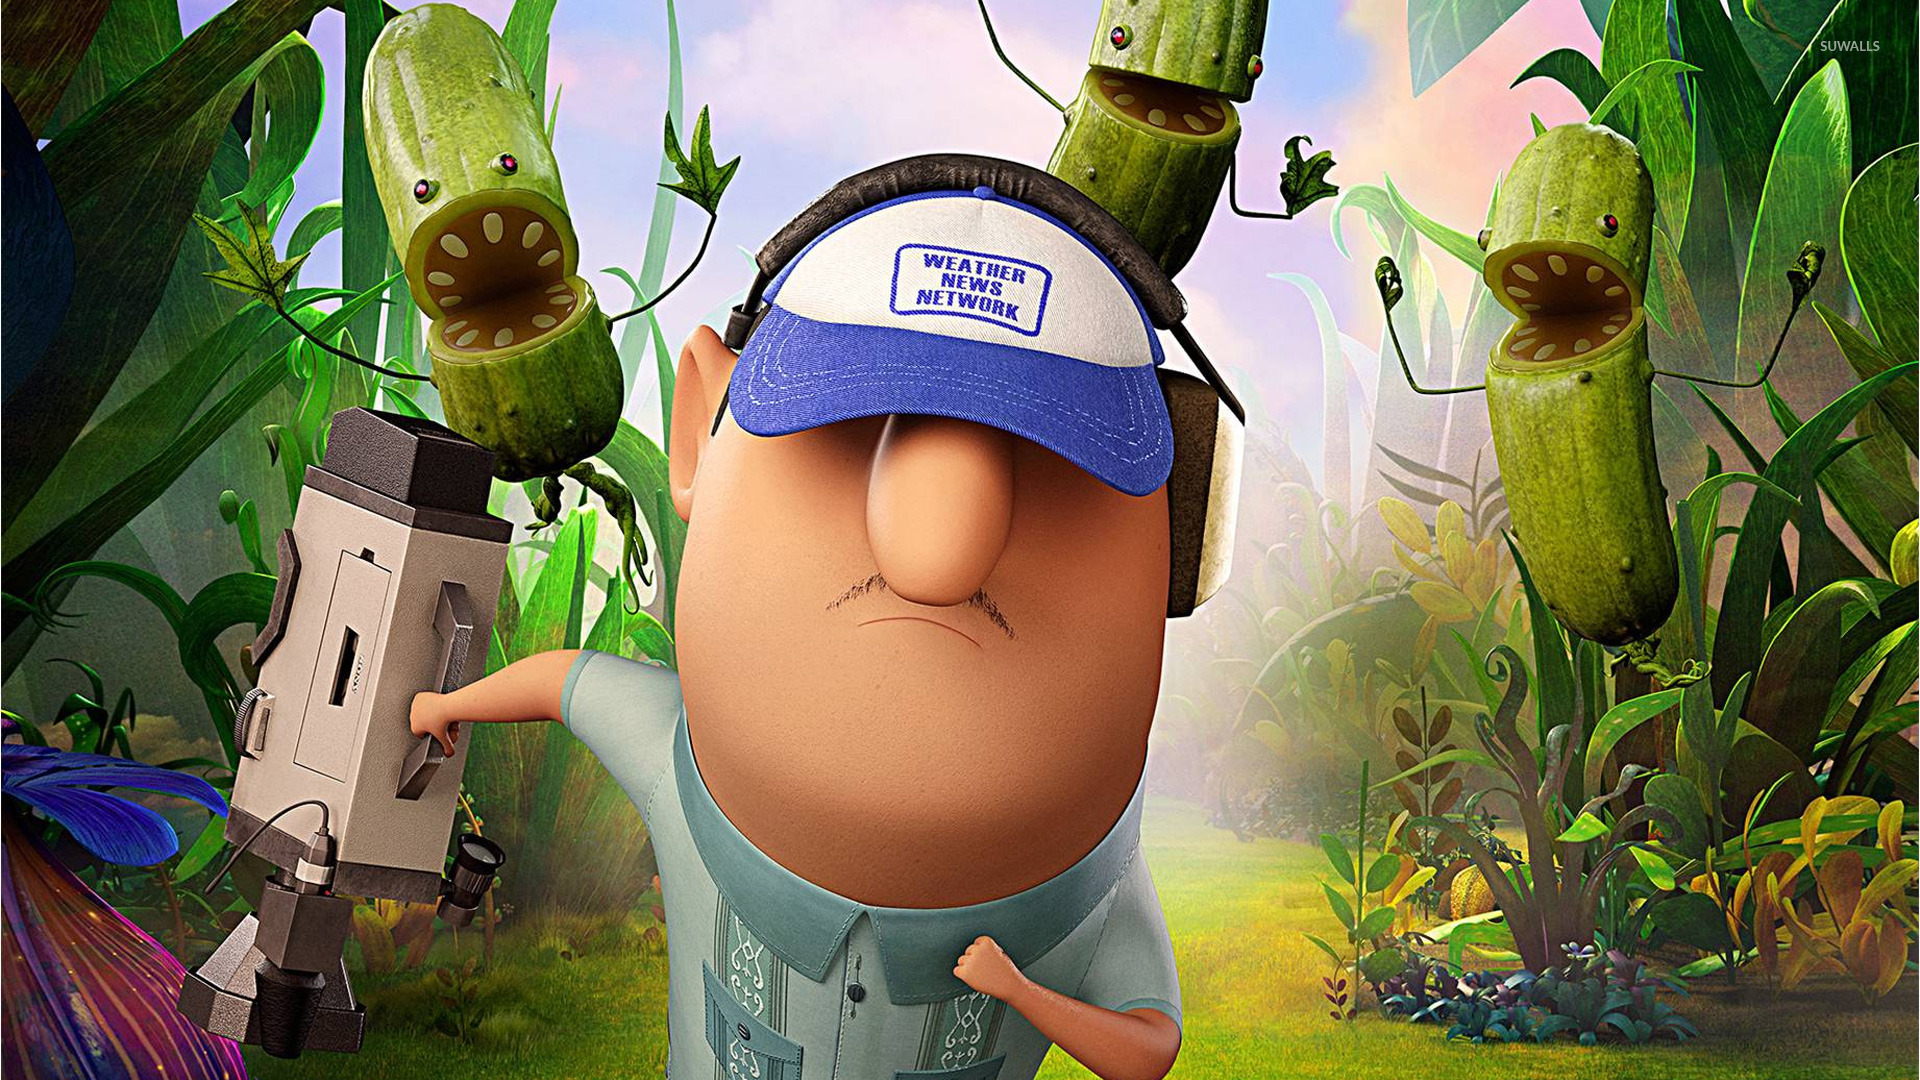 cloudy with a chance of meatballs 2 [9] wallpaper - cartoon